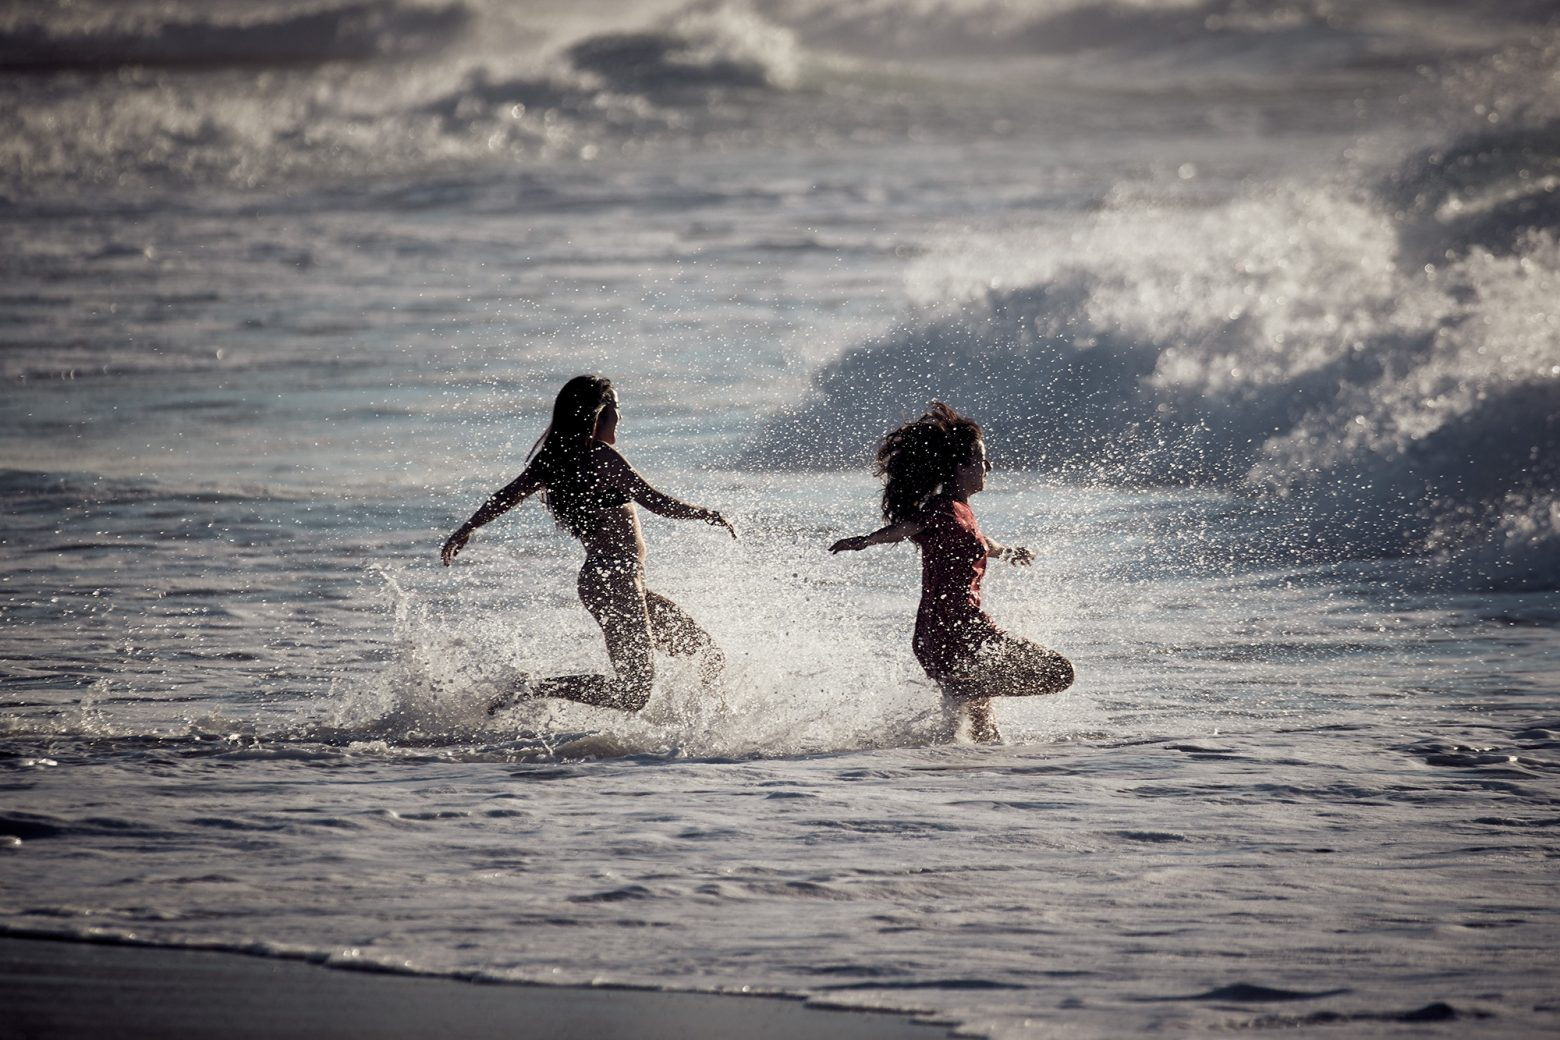 The girls pretty excited about the swell